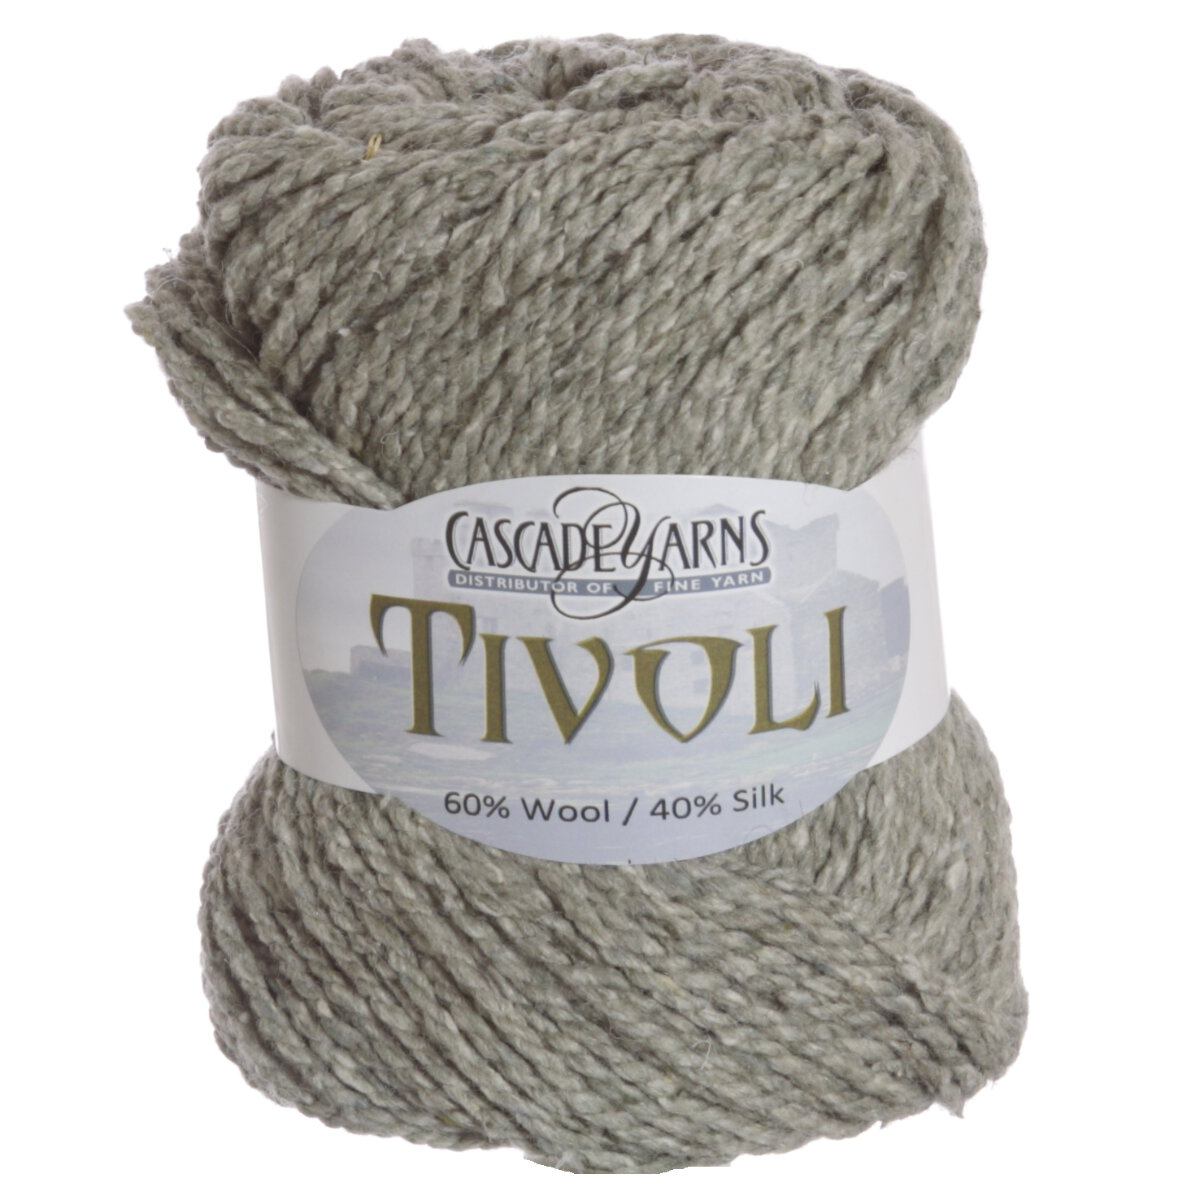 Free Knit Hat Patterns For Women : Cascade Tivoli Yarn - 01 Dove at Jimmy Beans Wool